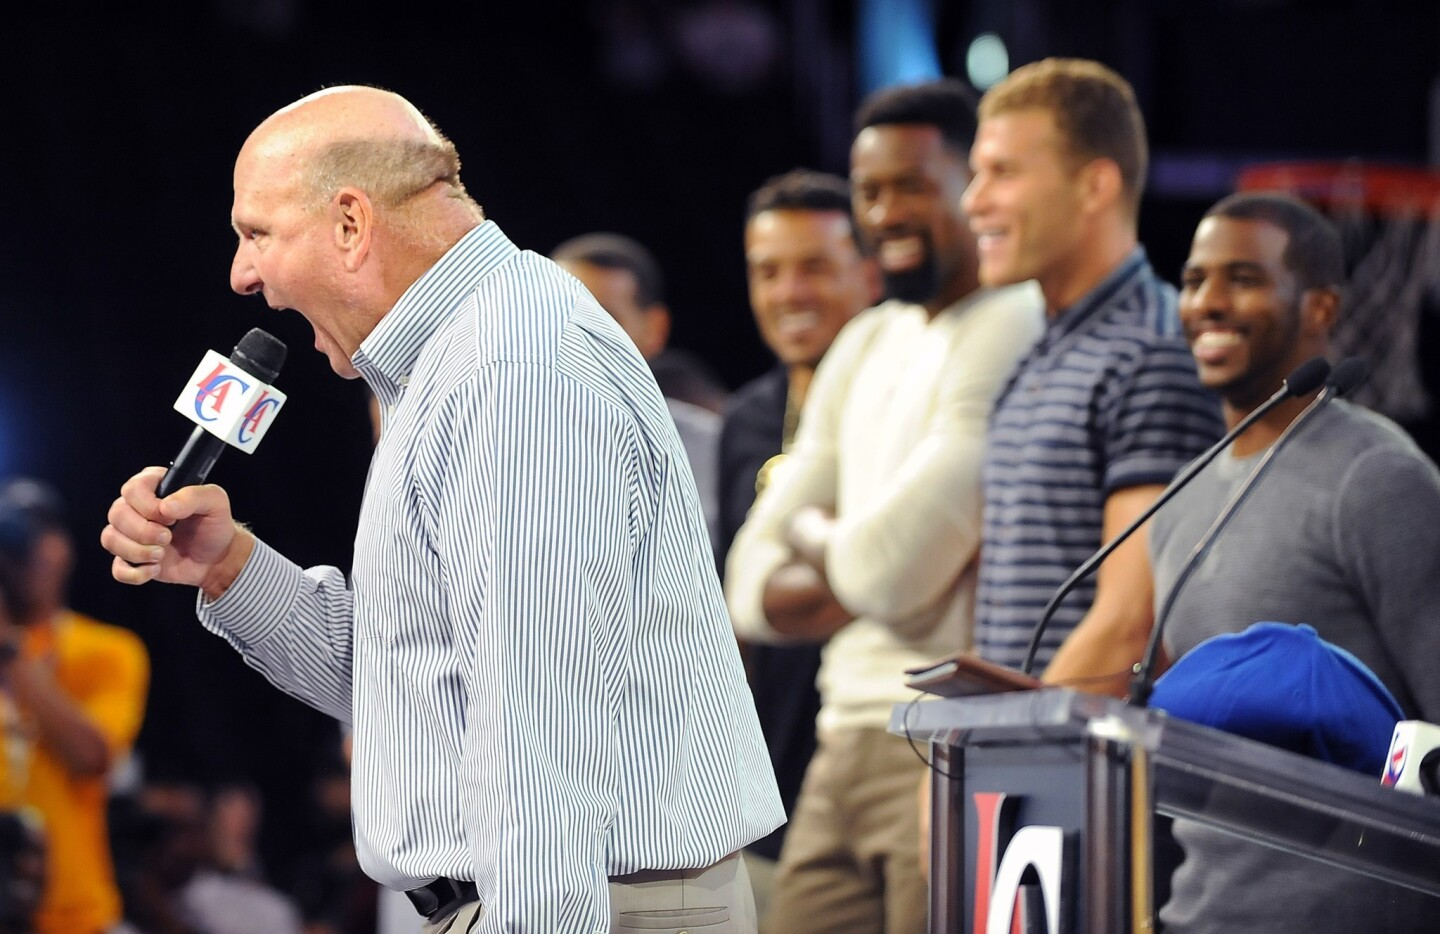 New Clippers owner Steve Ballmer speaks as Clippers players look on during a rally at Staples Center on Monday.